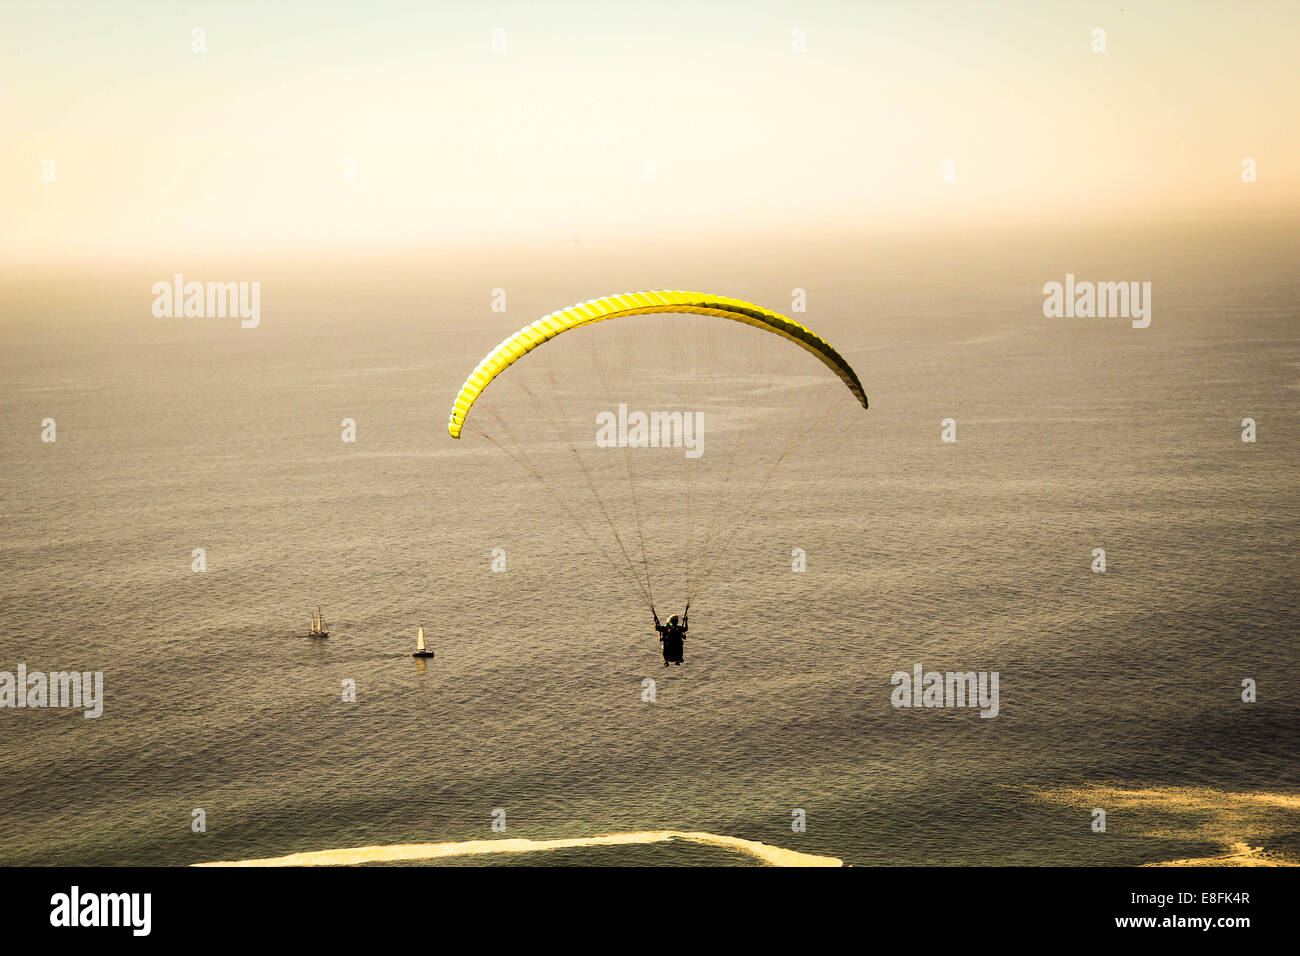 Yellow Parasail - Stock Image